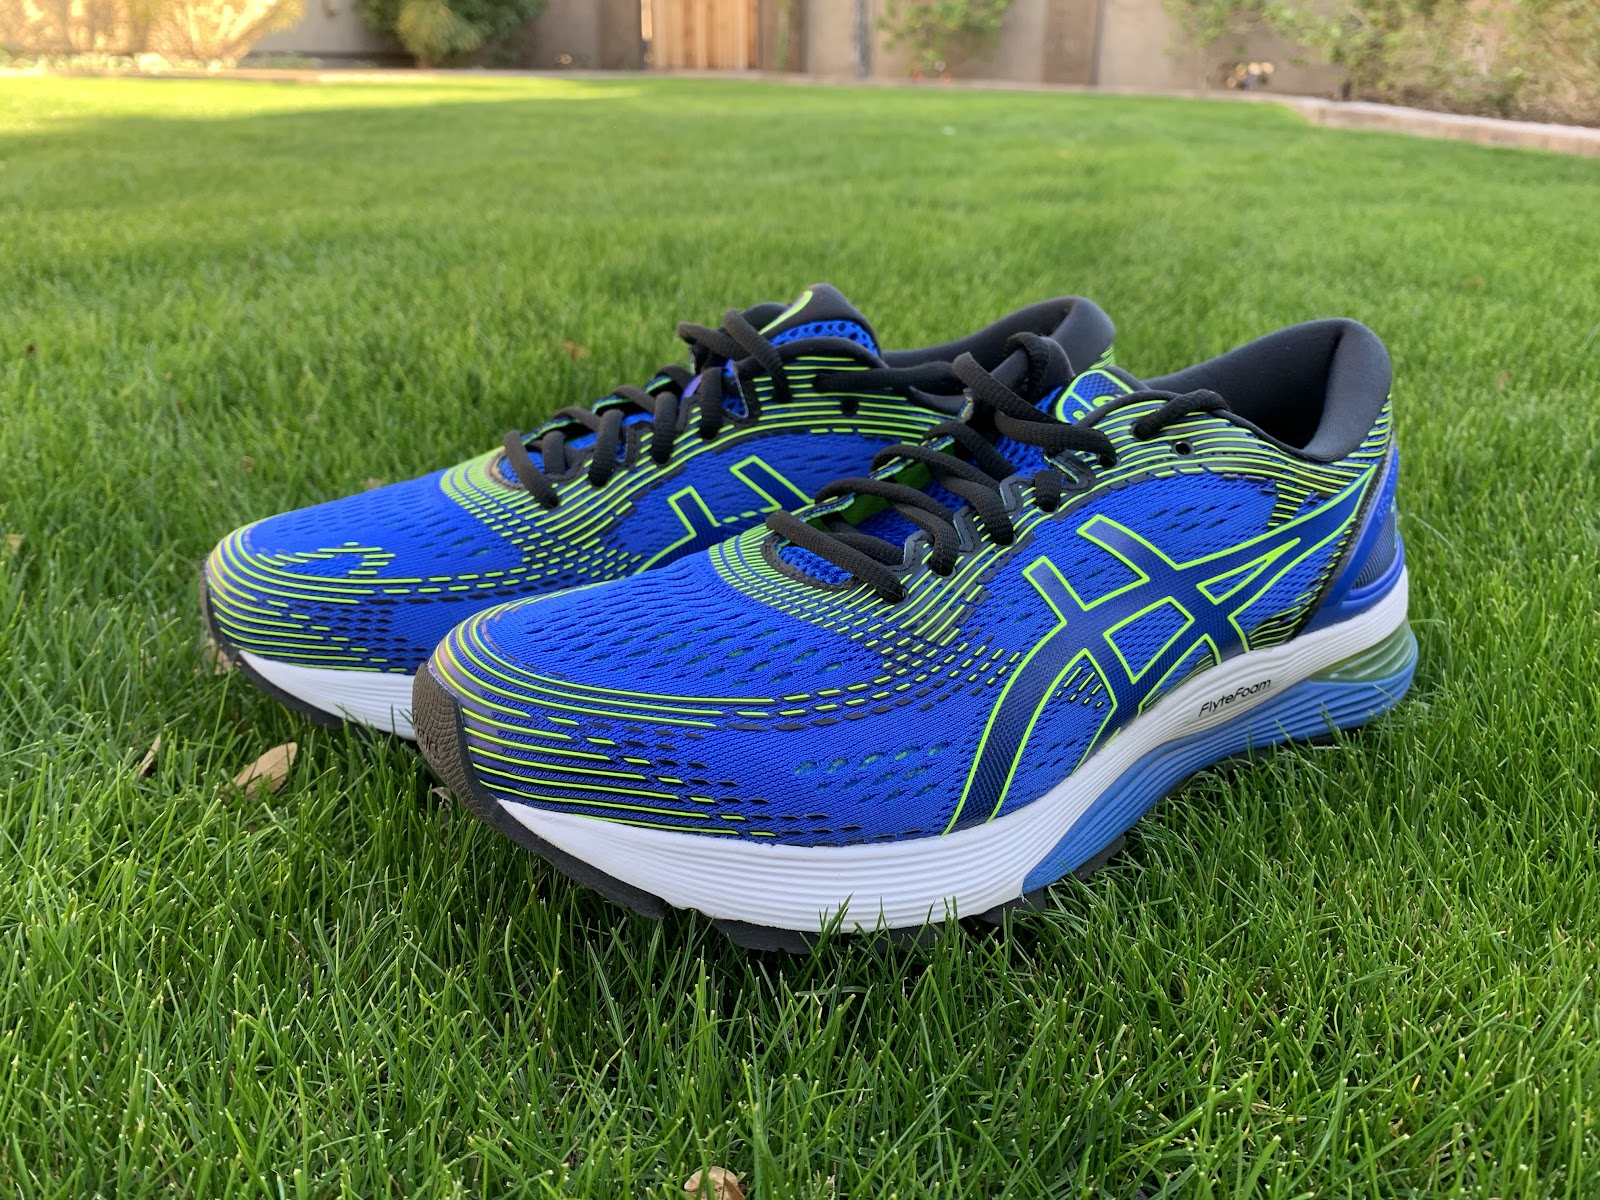 091c58d68d6c7 Road Trail Run  ASICS GEL Nimbus 21 Review  The N Formula Deftly Tuned